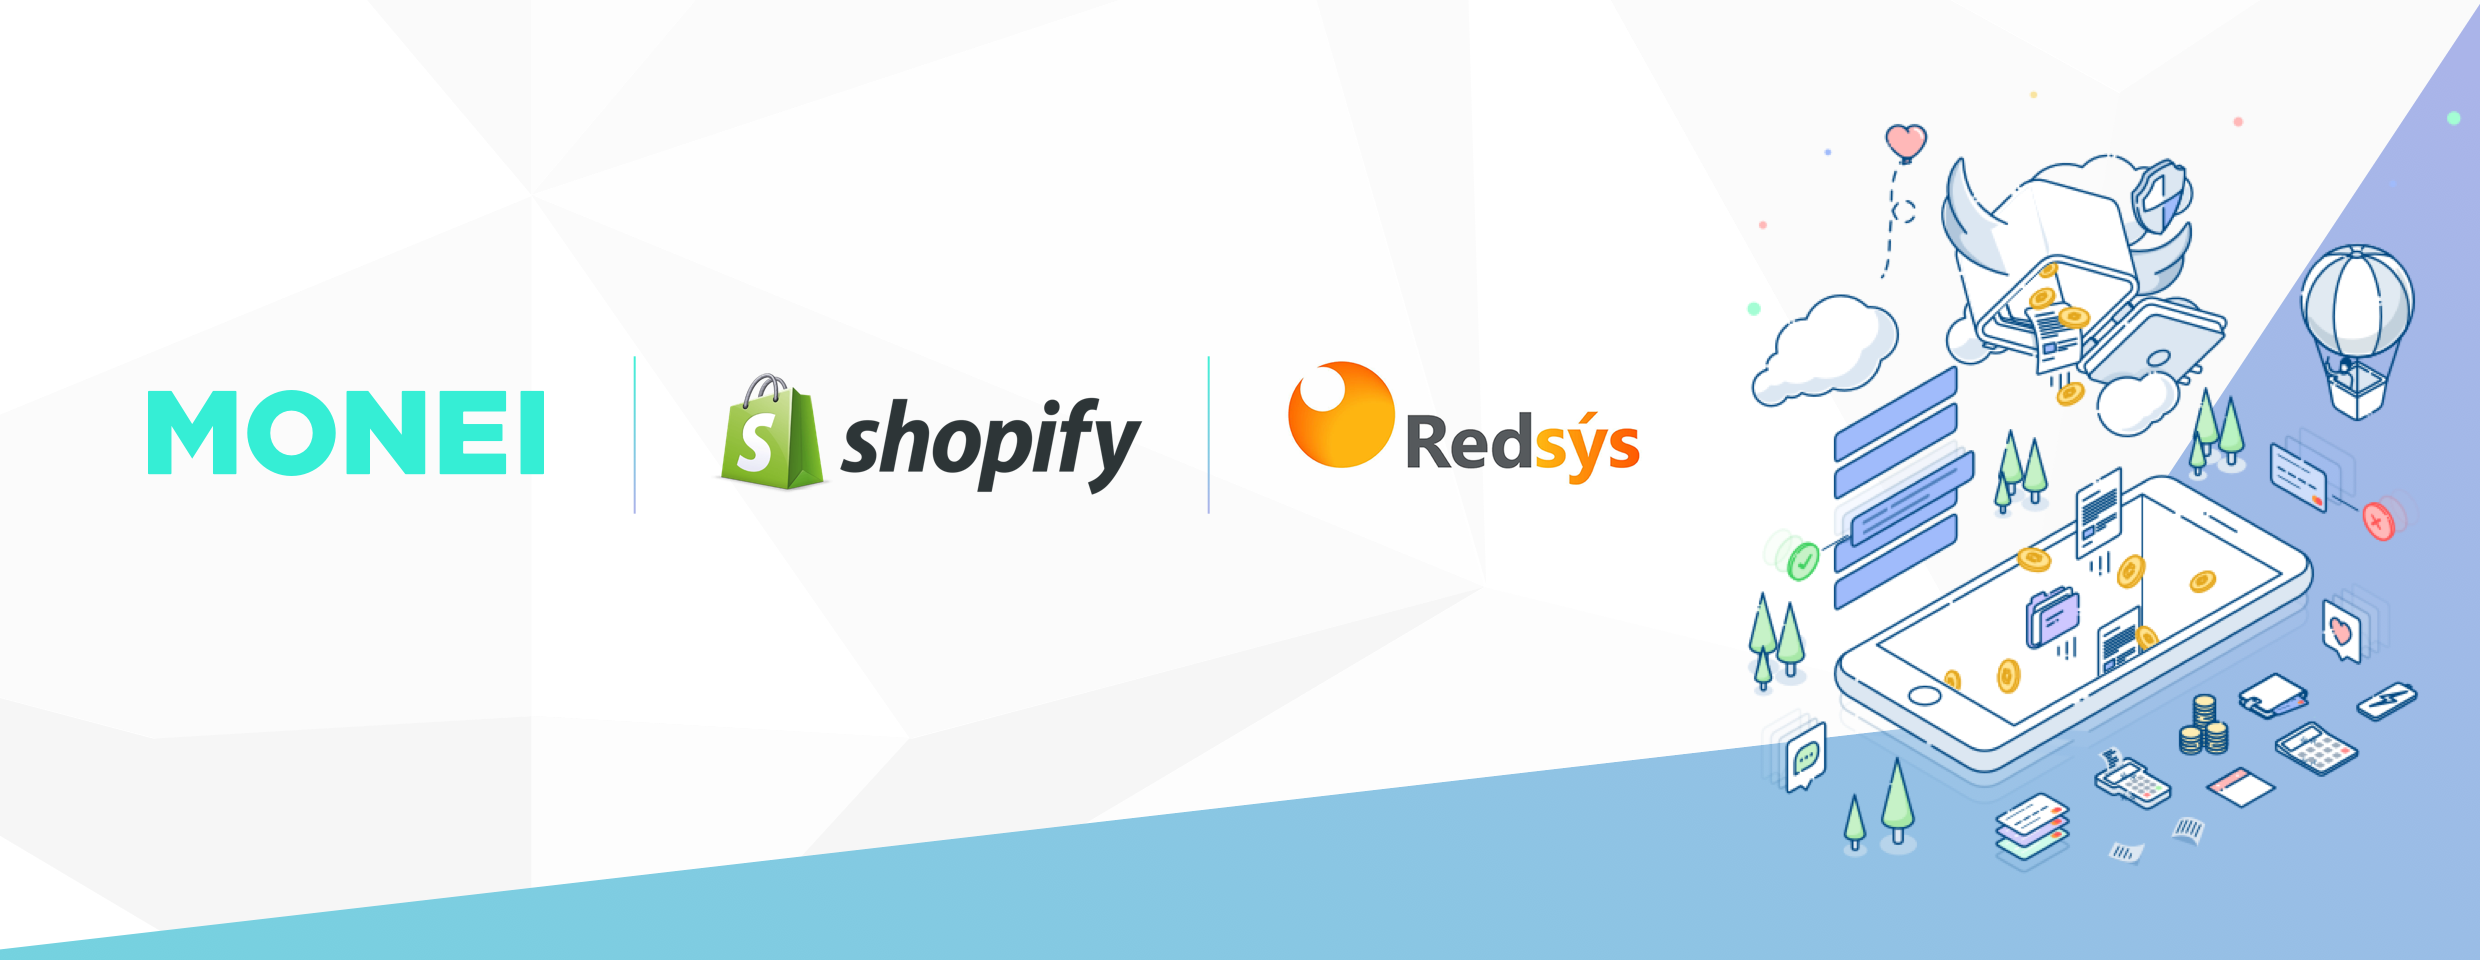 Foto de MONEI + SHOPIFY + REDSYS